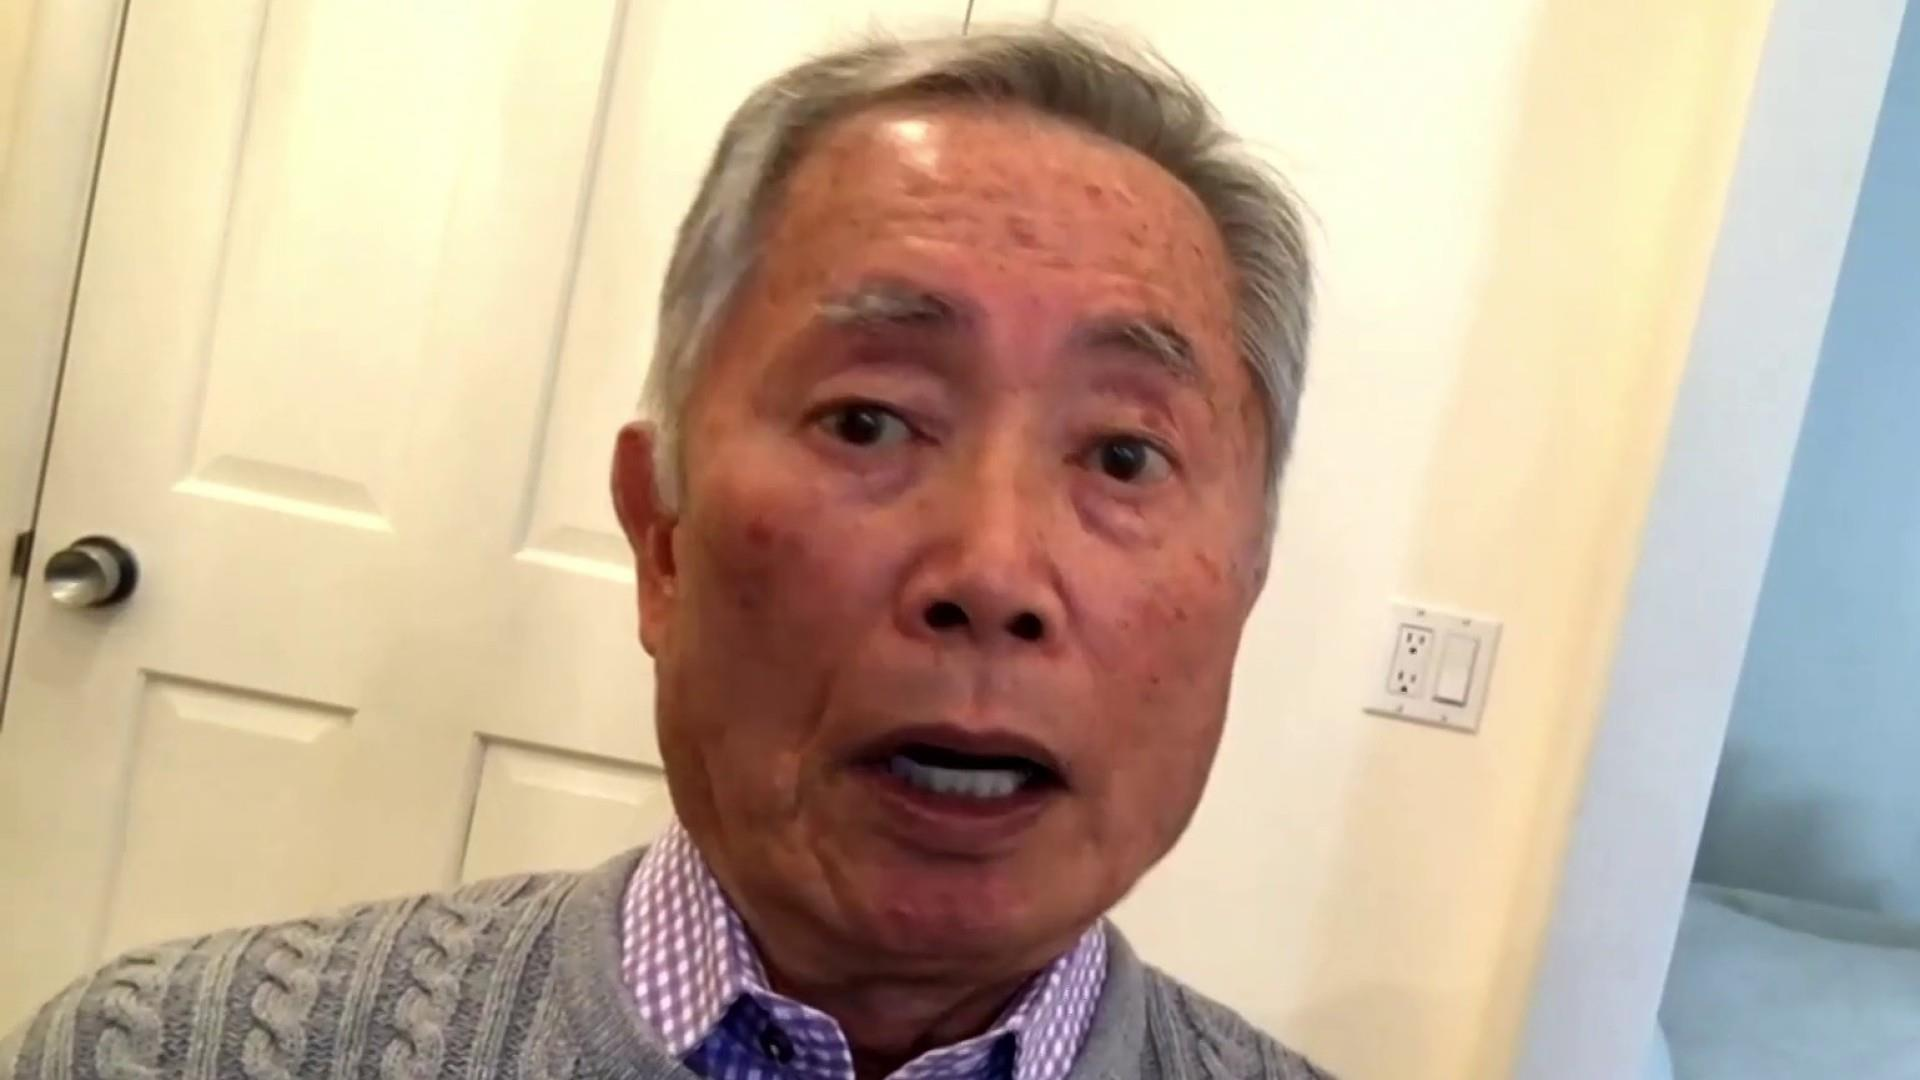 George Takei said he's 'chilled' by Trump's use of phrase 'Chinese virus'